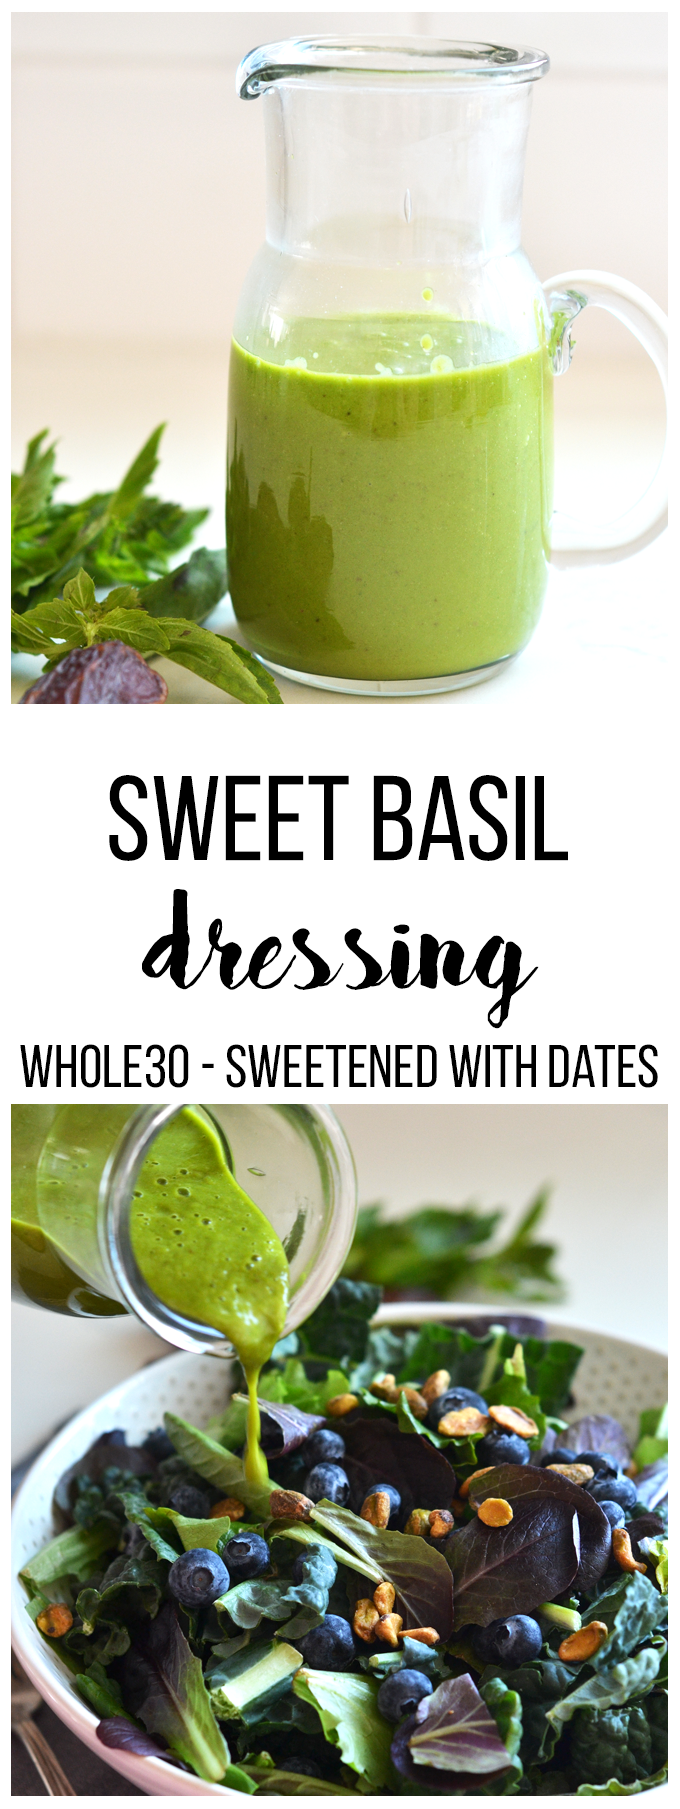 This Sweet Basil Dressing is Whole30 compliant and is naturally sweetened! Great for a summer BBQ!